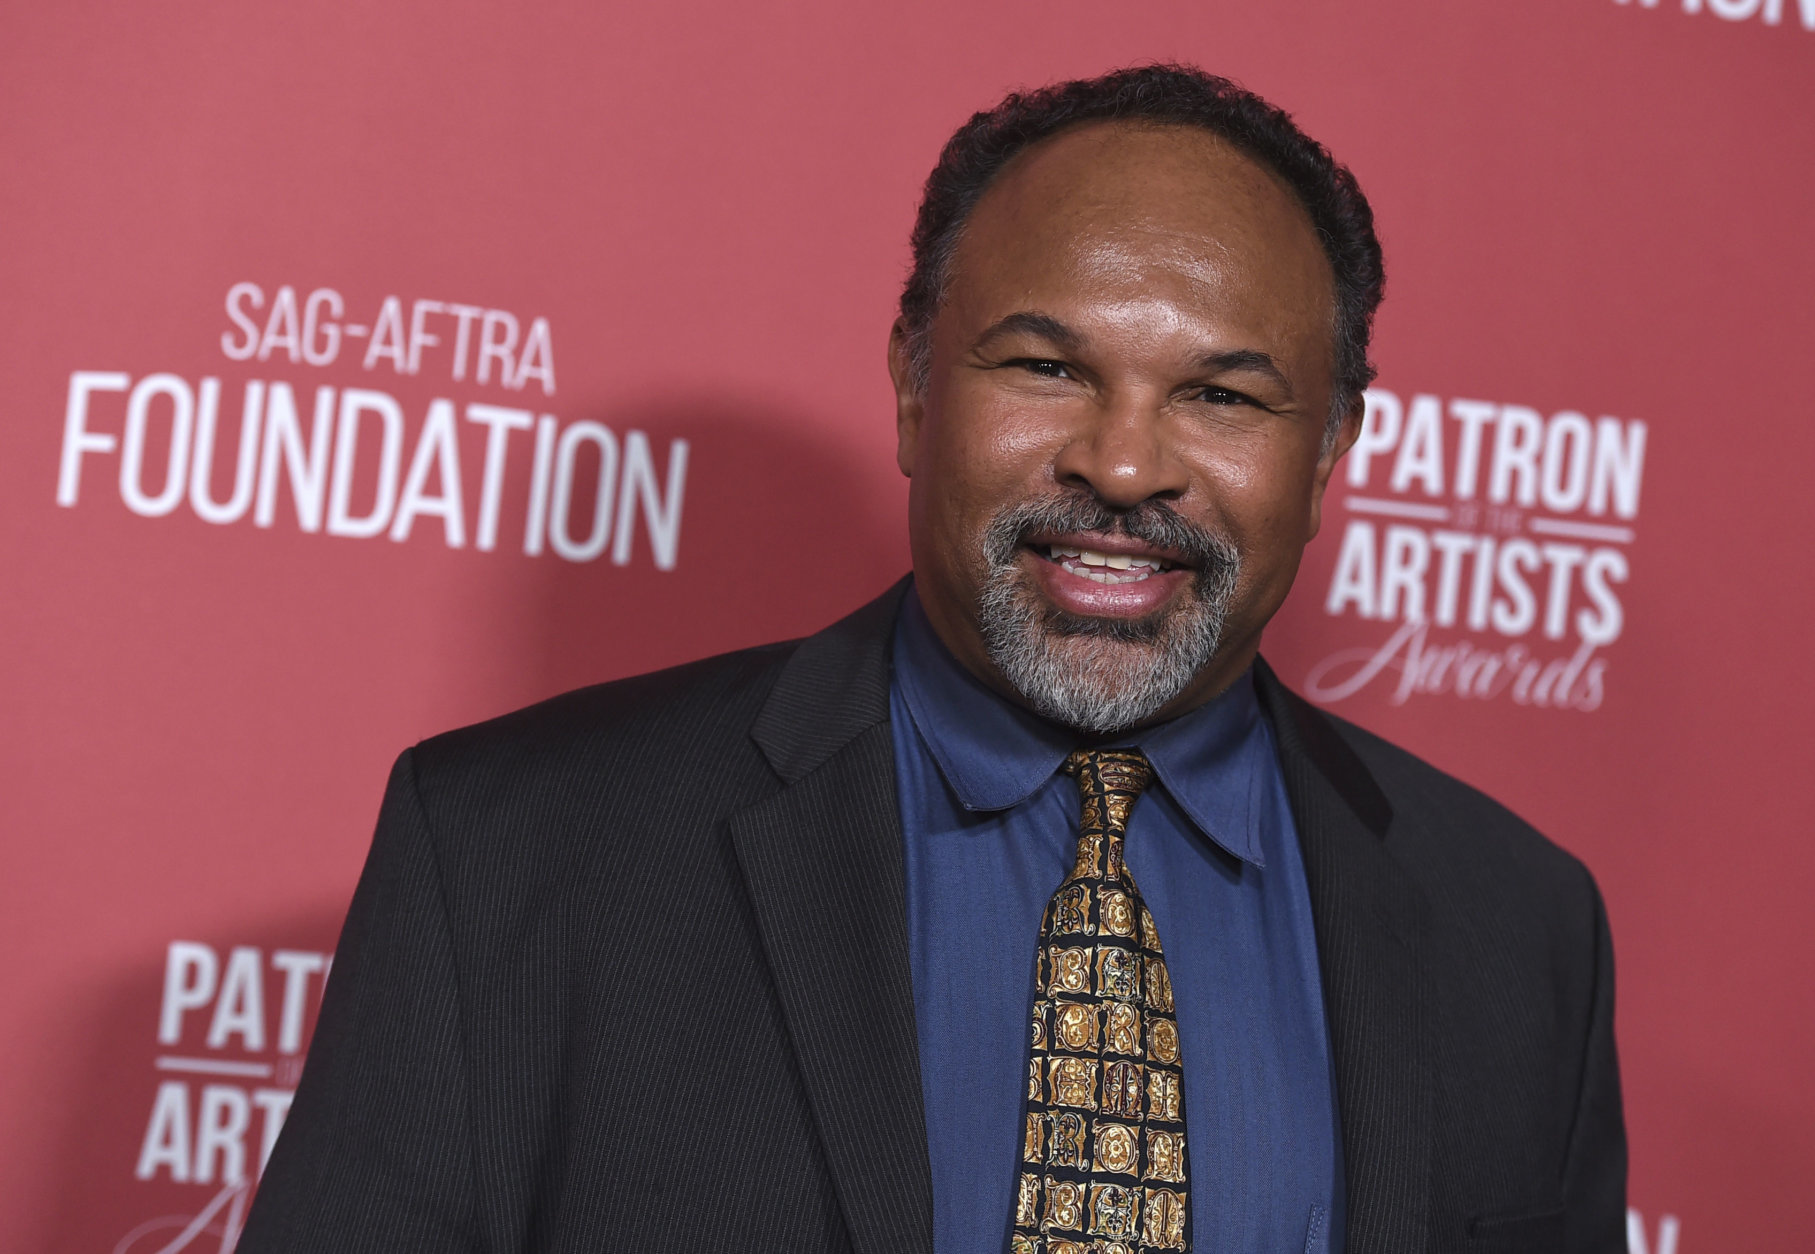 Geoffrey Owens arrives at the Patron of the Artists Awards on Thursday, Nov. 8, 2018, at the Wallis Annenberg Center for the Performing Arts in Beverly Hills, Calif. (Photo by Jordan Strauss/Invision/AP)